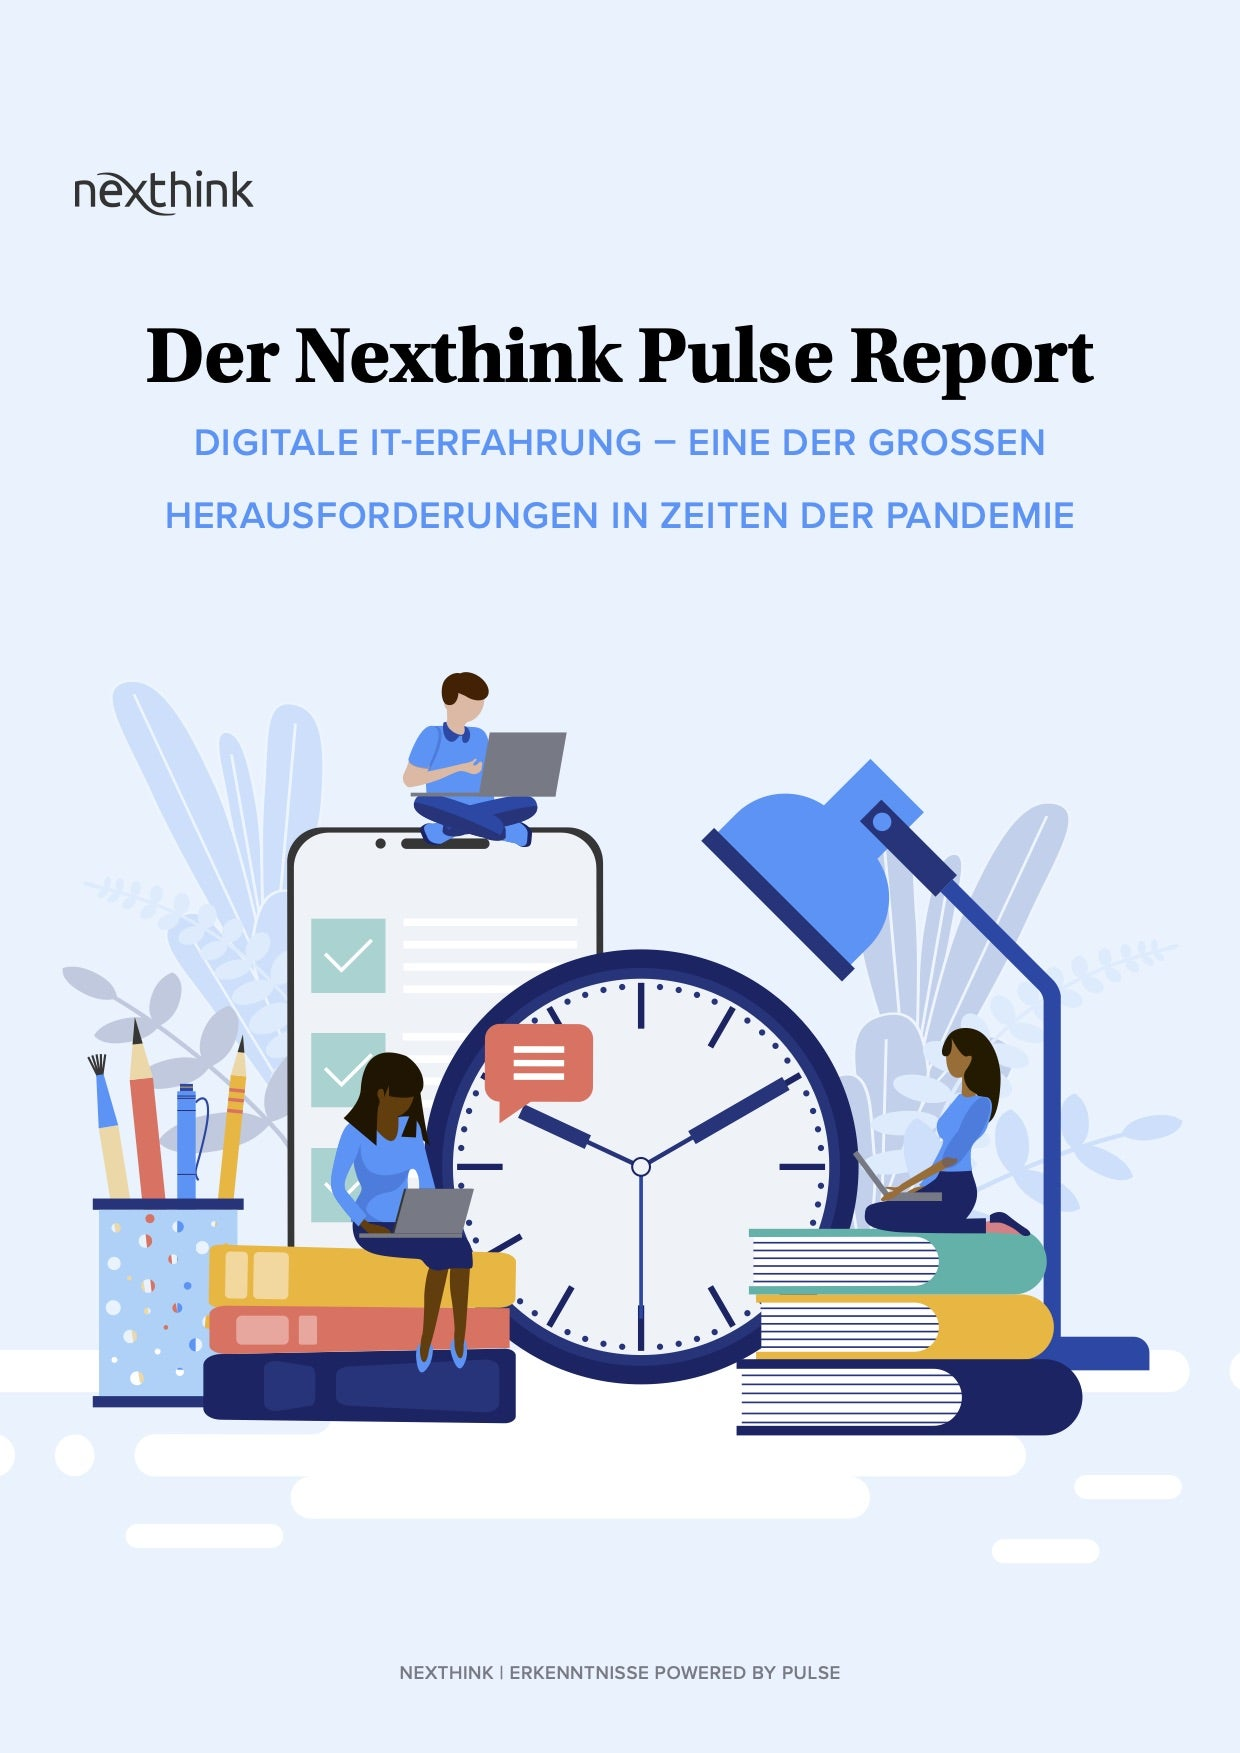 Der Nexthink Pulse Report